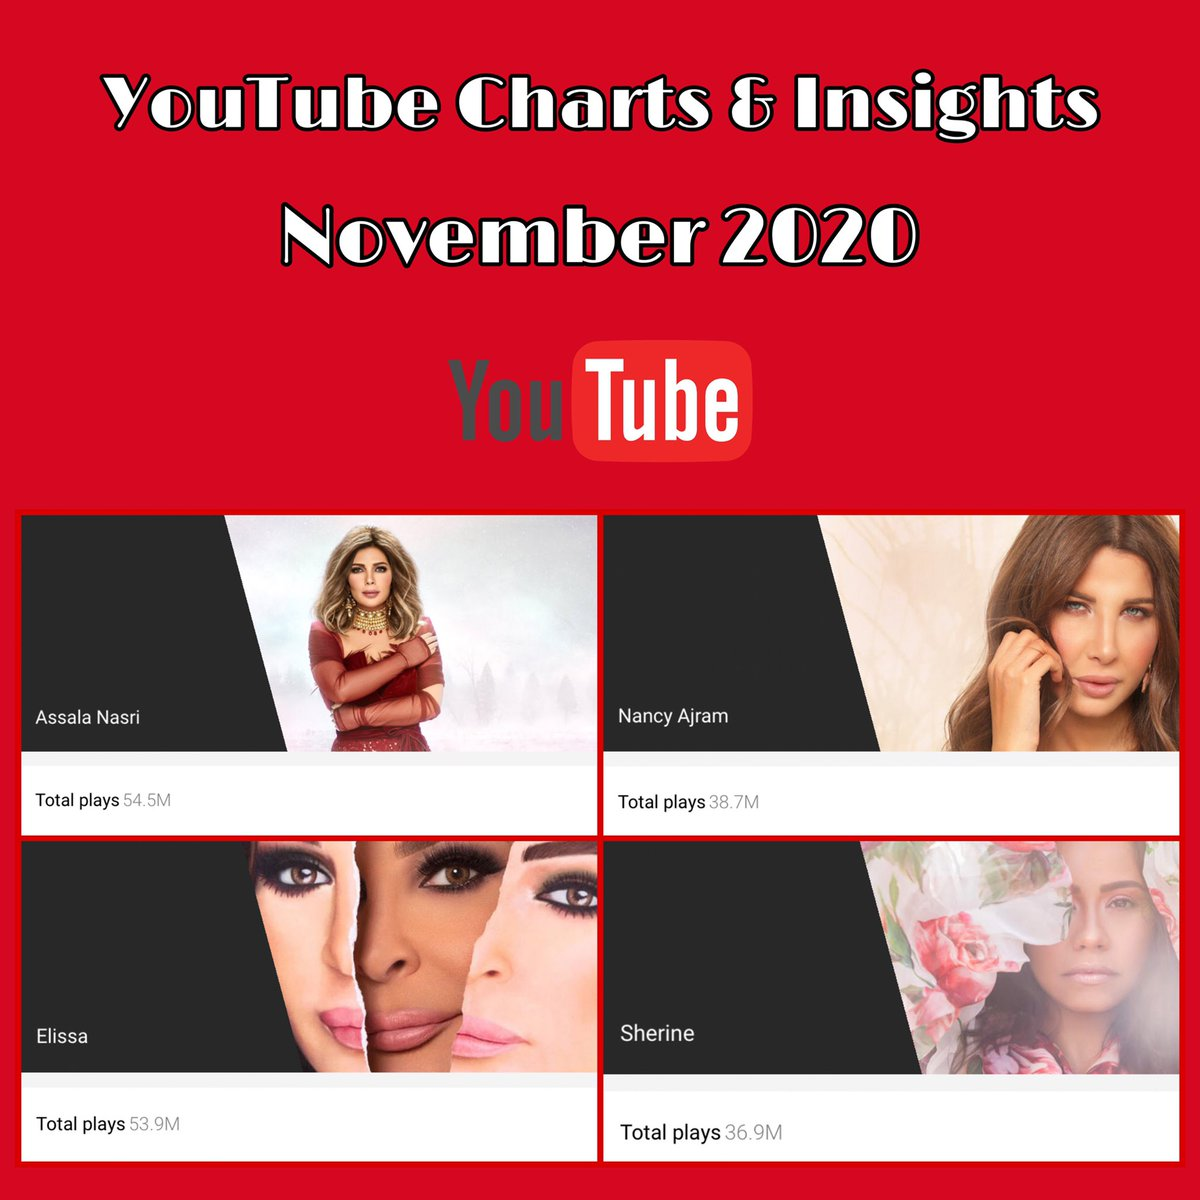 Youtube views Charts and insights - November 2020  @AssalaOfficial 54.5M #أصالة @elissakh 53.9M #إليسا  @NancyAjram 38.7M #نانسي_عجرم  @sherine 36.9M #شيرين_عبدالوهاب